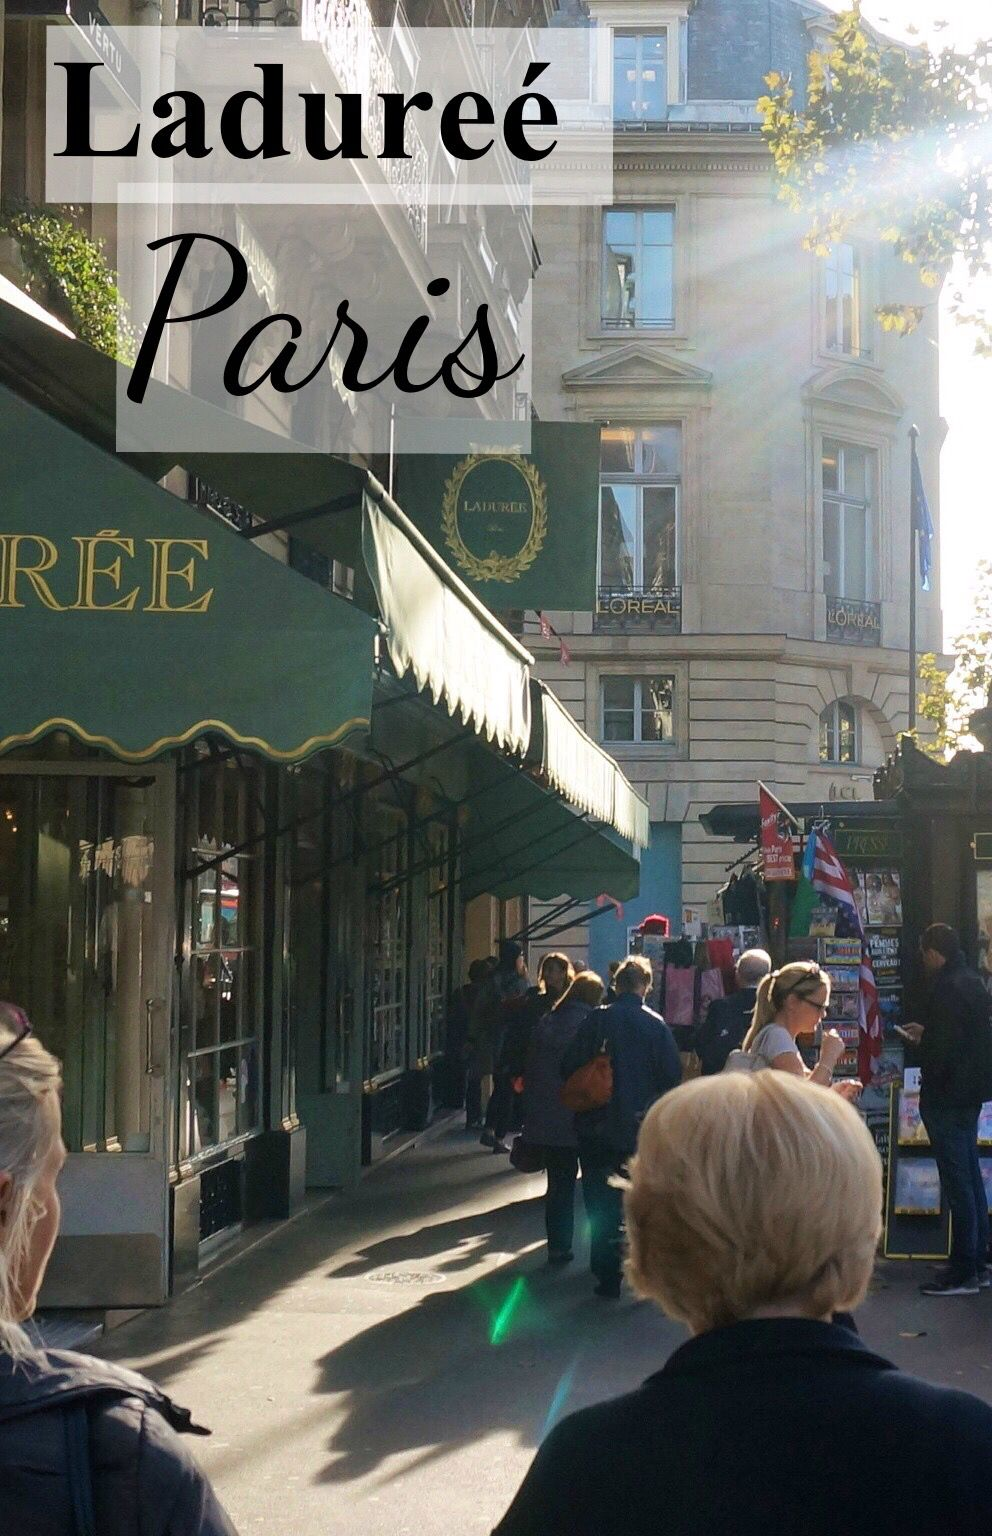 Paris shopping guide to the best macarons at Ladureé. How to order macarons and bring them back (carefully!) as a travel souvenir from Paris.